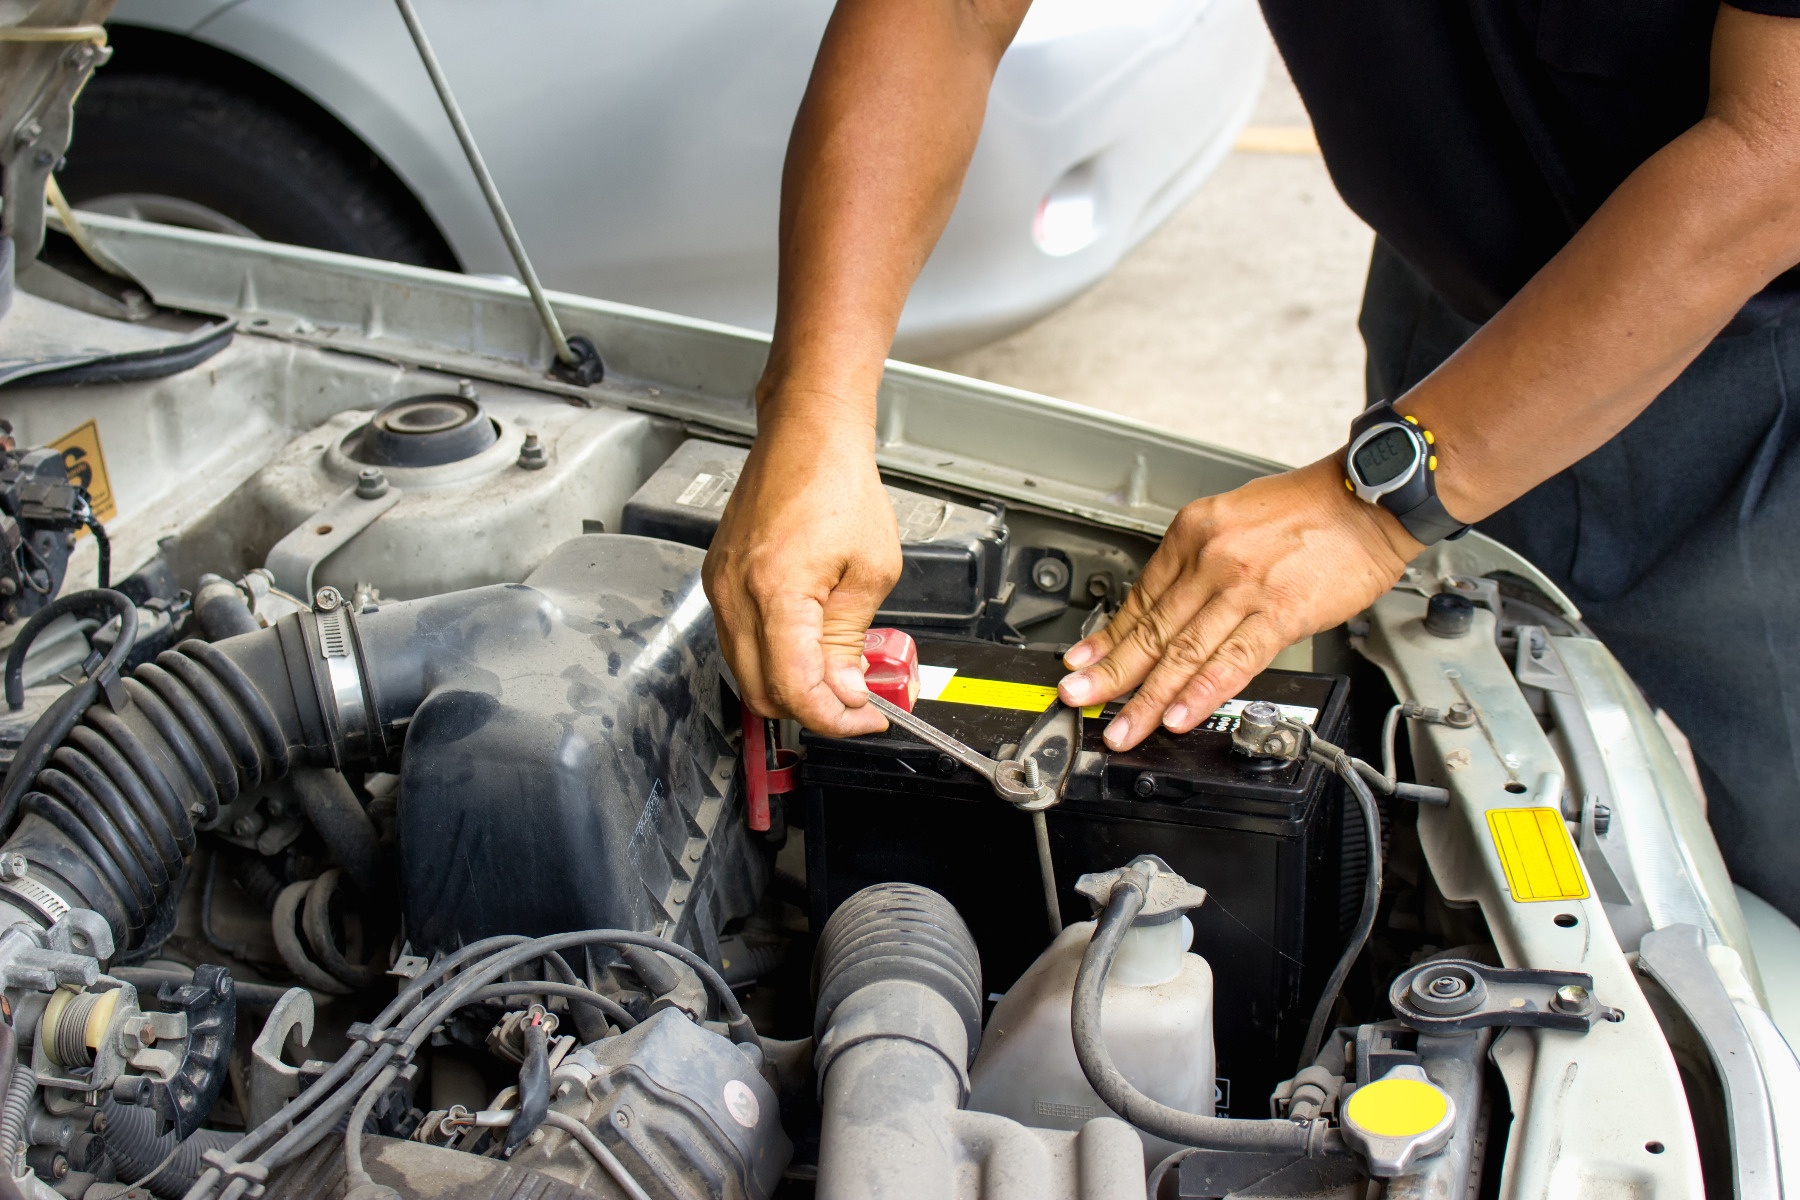 where to buy a car battery at an affordable price